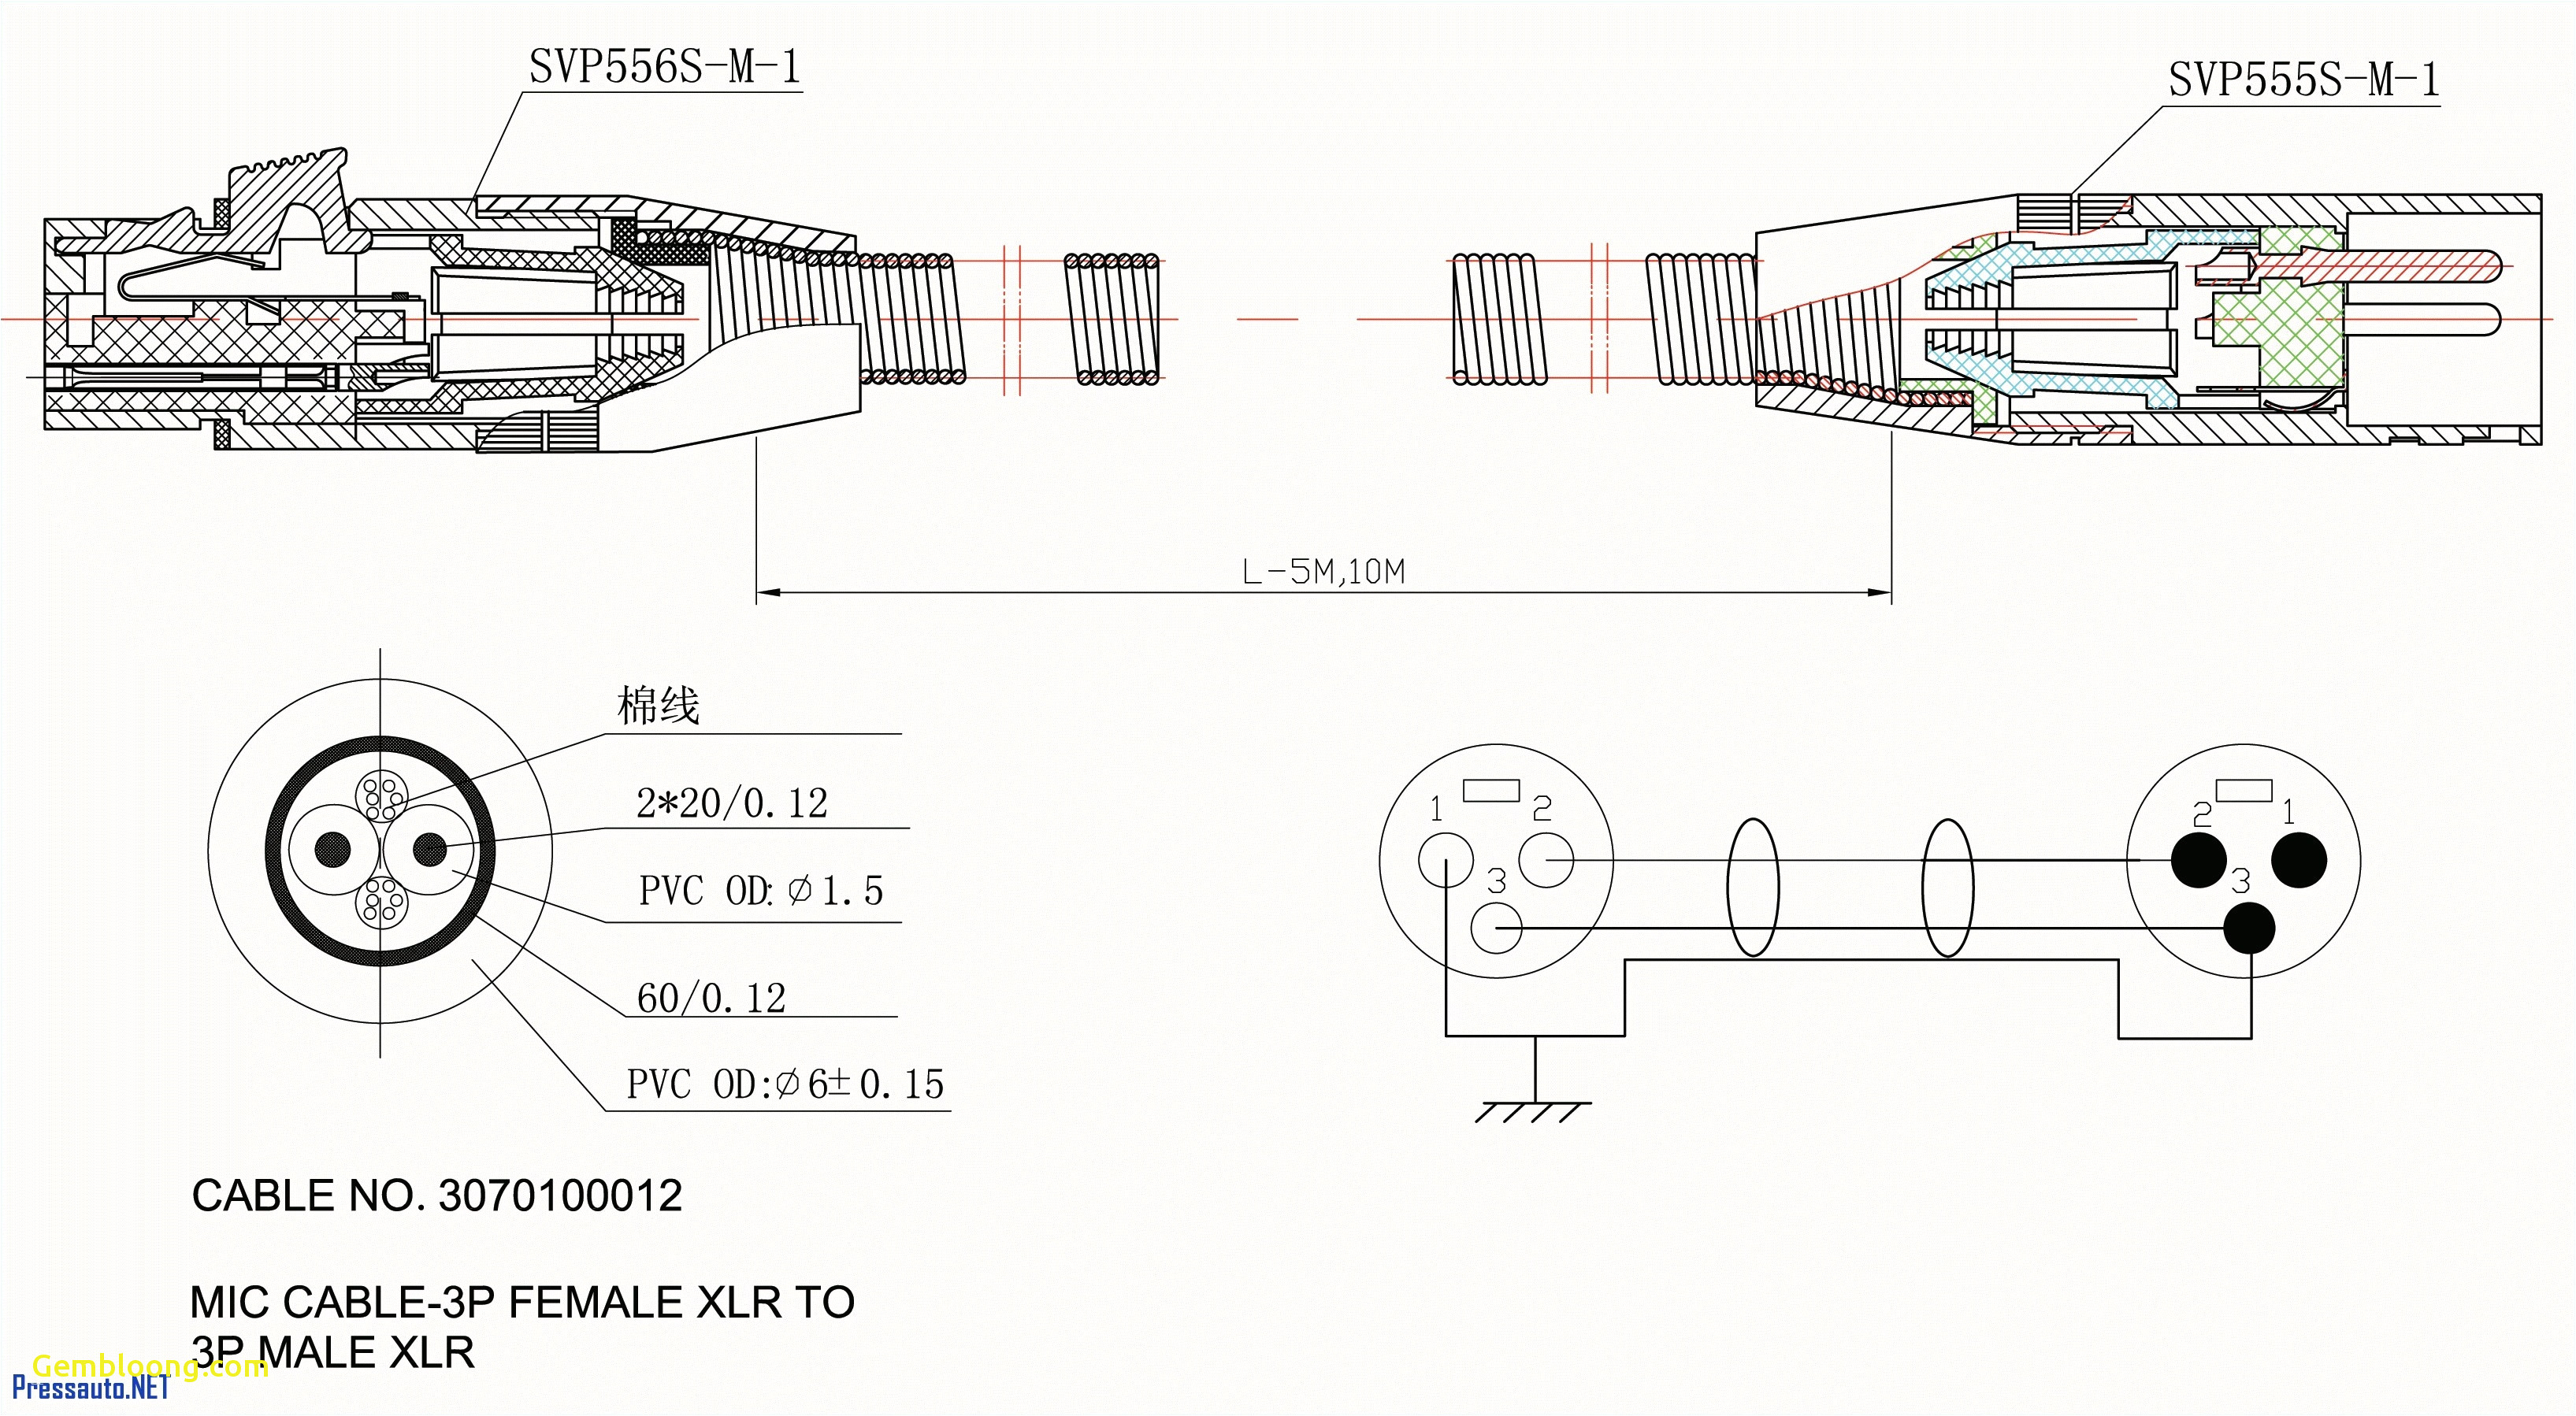 wiring diagram for 4l60e transmission awesome 1995 lt1 wiring 4l60e transmission wiring diagram